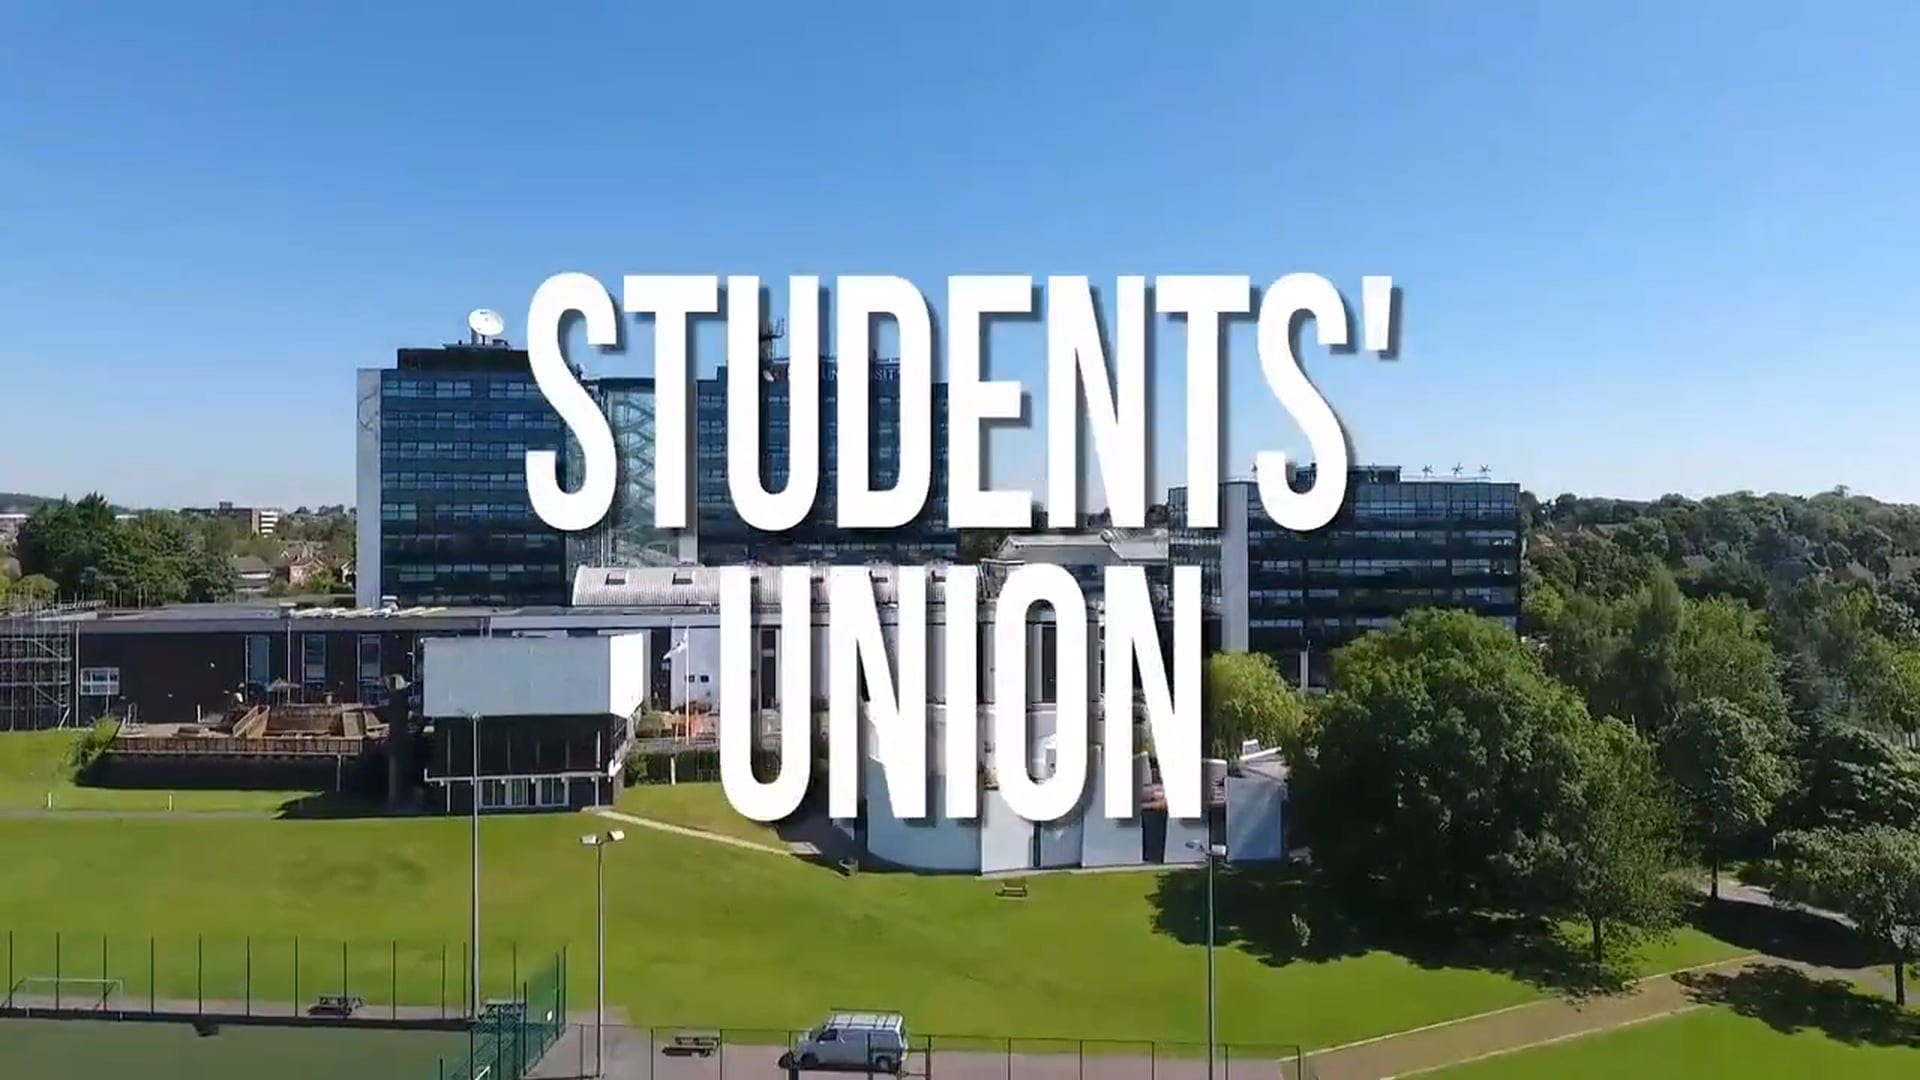 This is our students' union